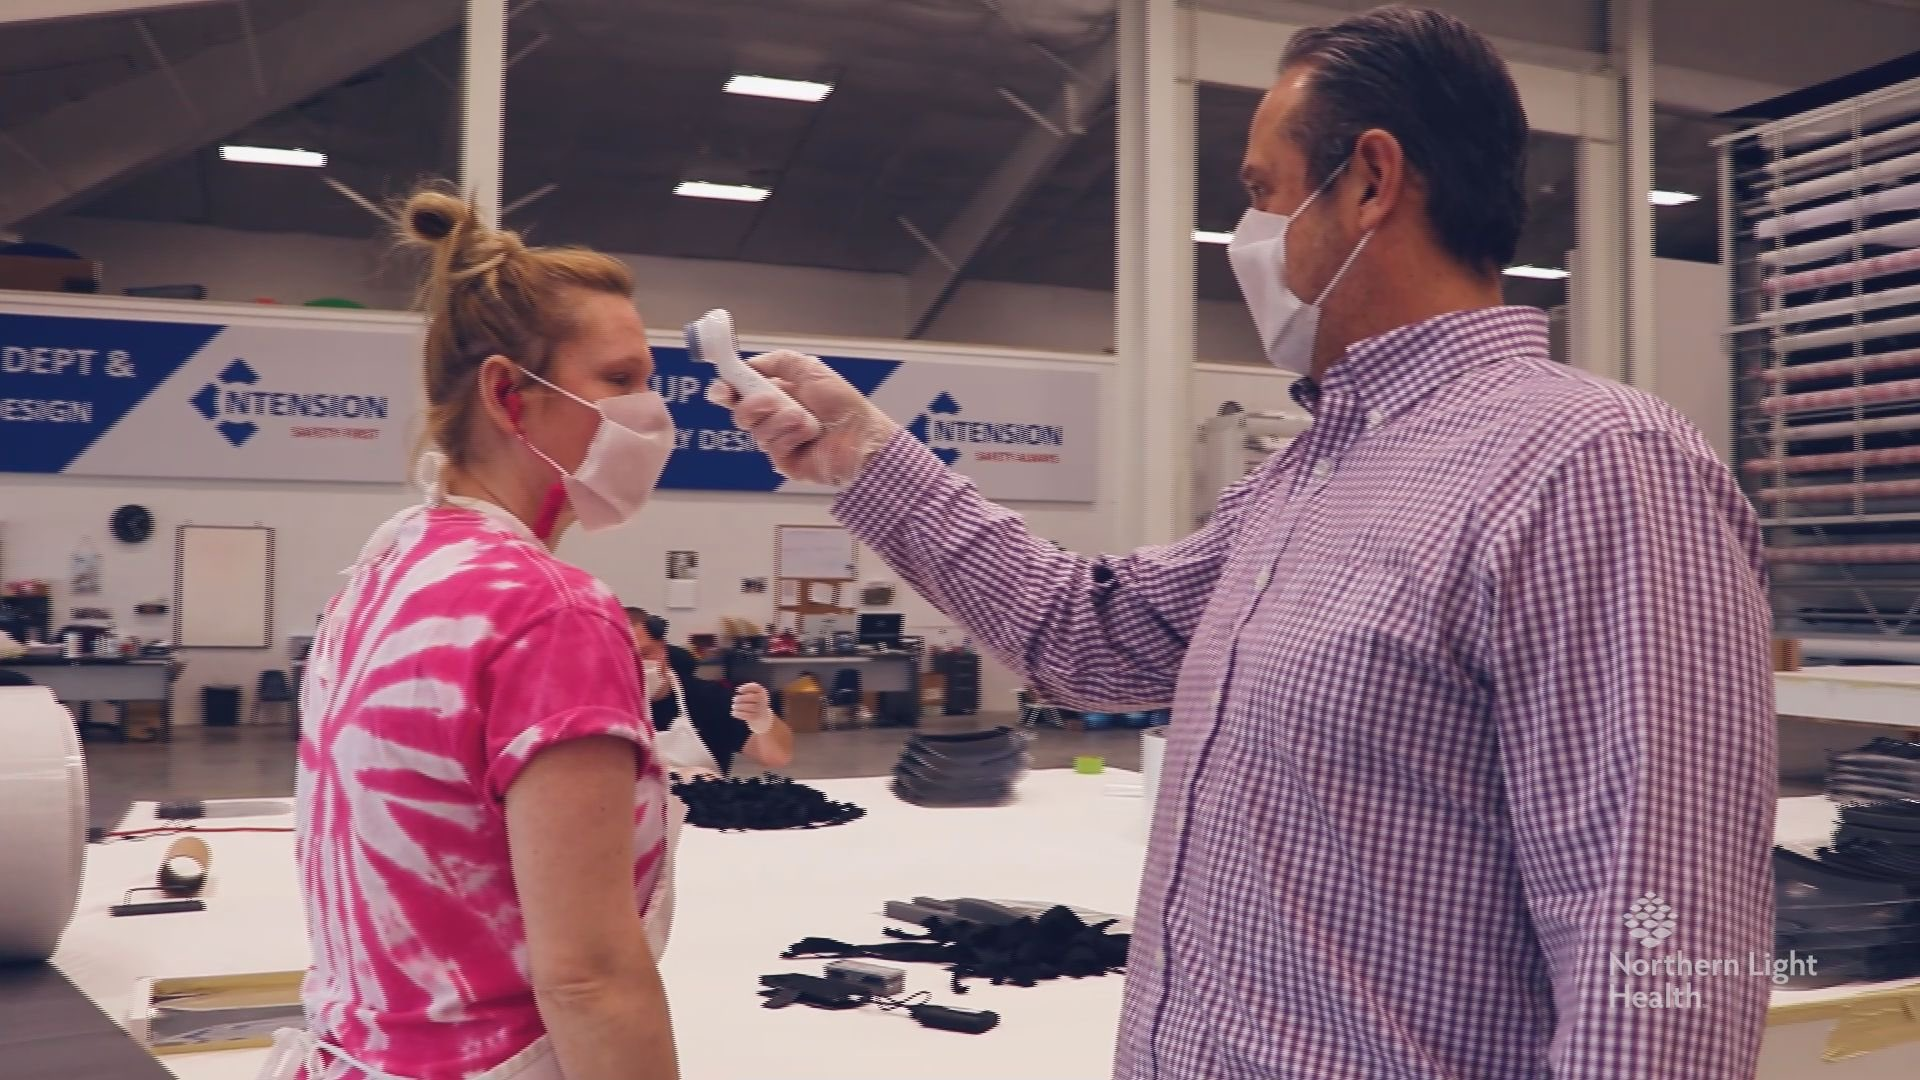 A Hermon company, Ntension, is now making 7000 face masks and shields a day for hospital use during coronavirus, COVID-19 pandemic